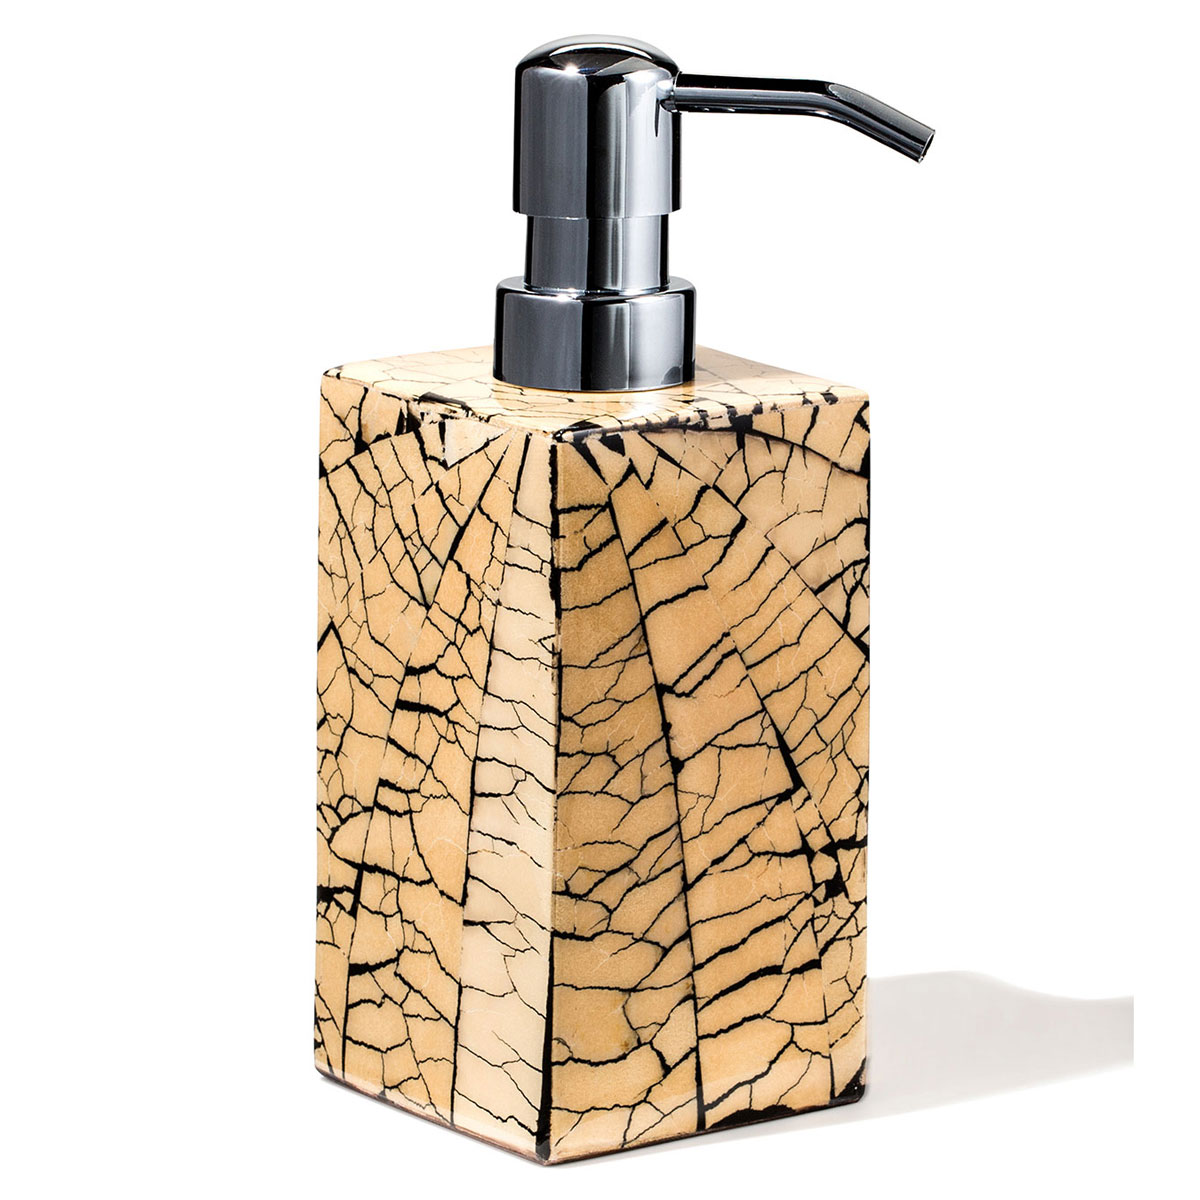 Stylish Soap Dispensers For Your Bathroom And Kitchen Coveteur